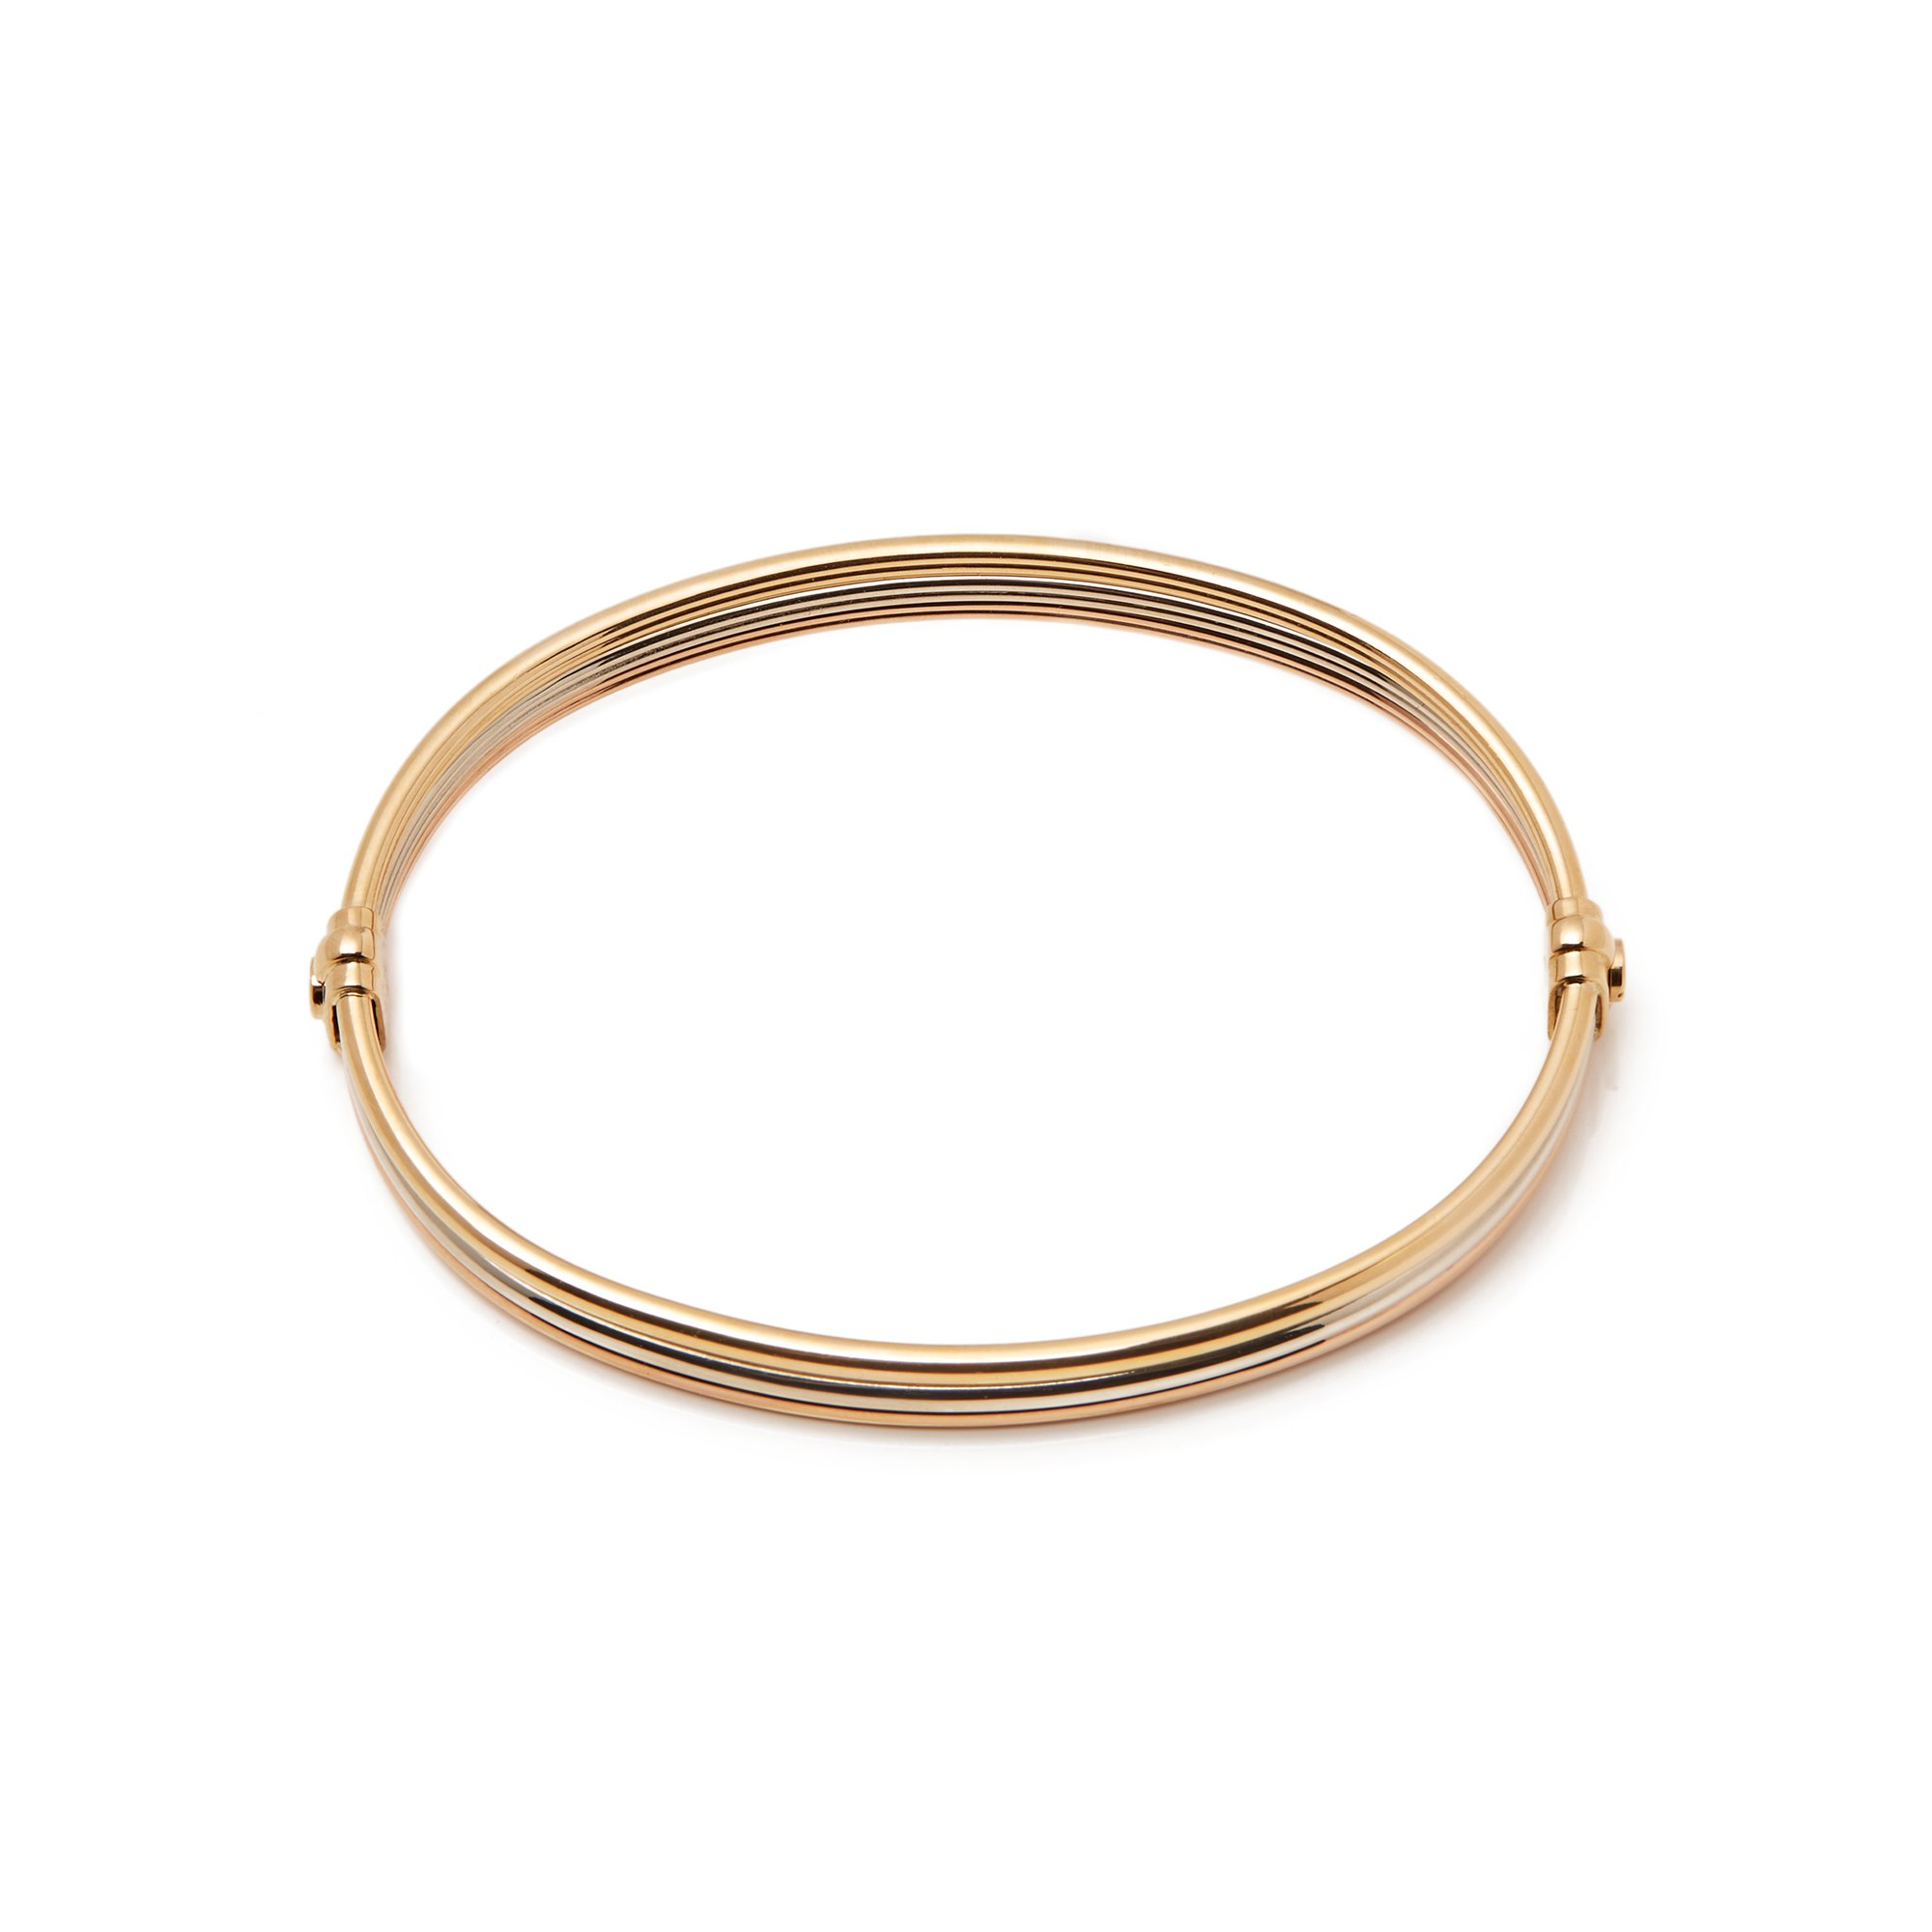 Cartier 18k Yellow, White & Rose Gold Vintage Trinity Bracelet